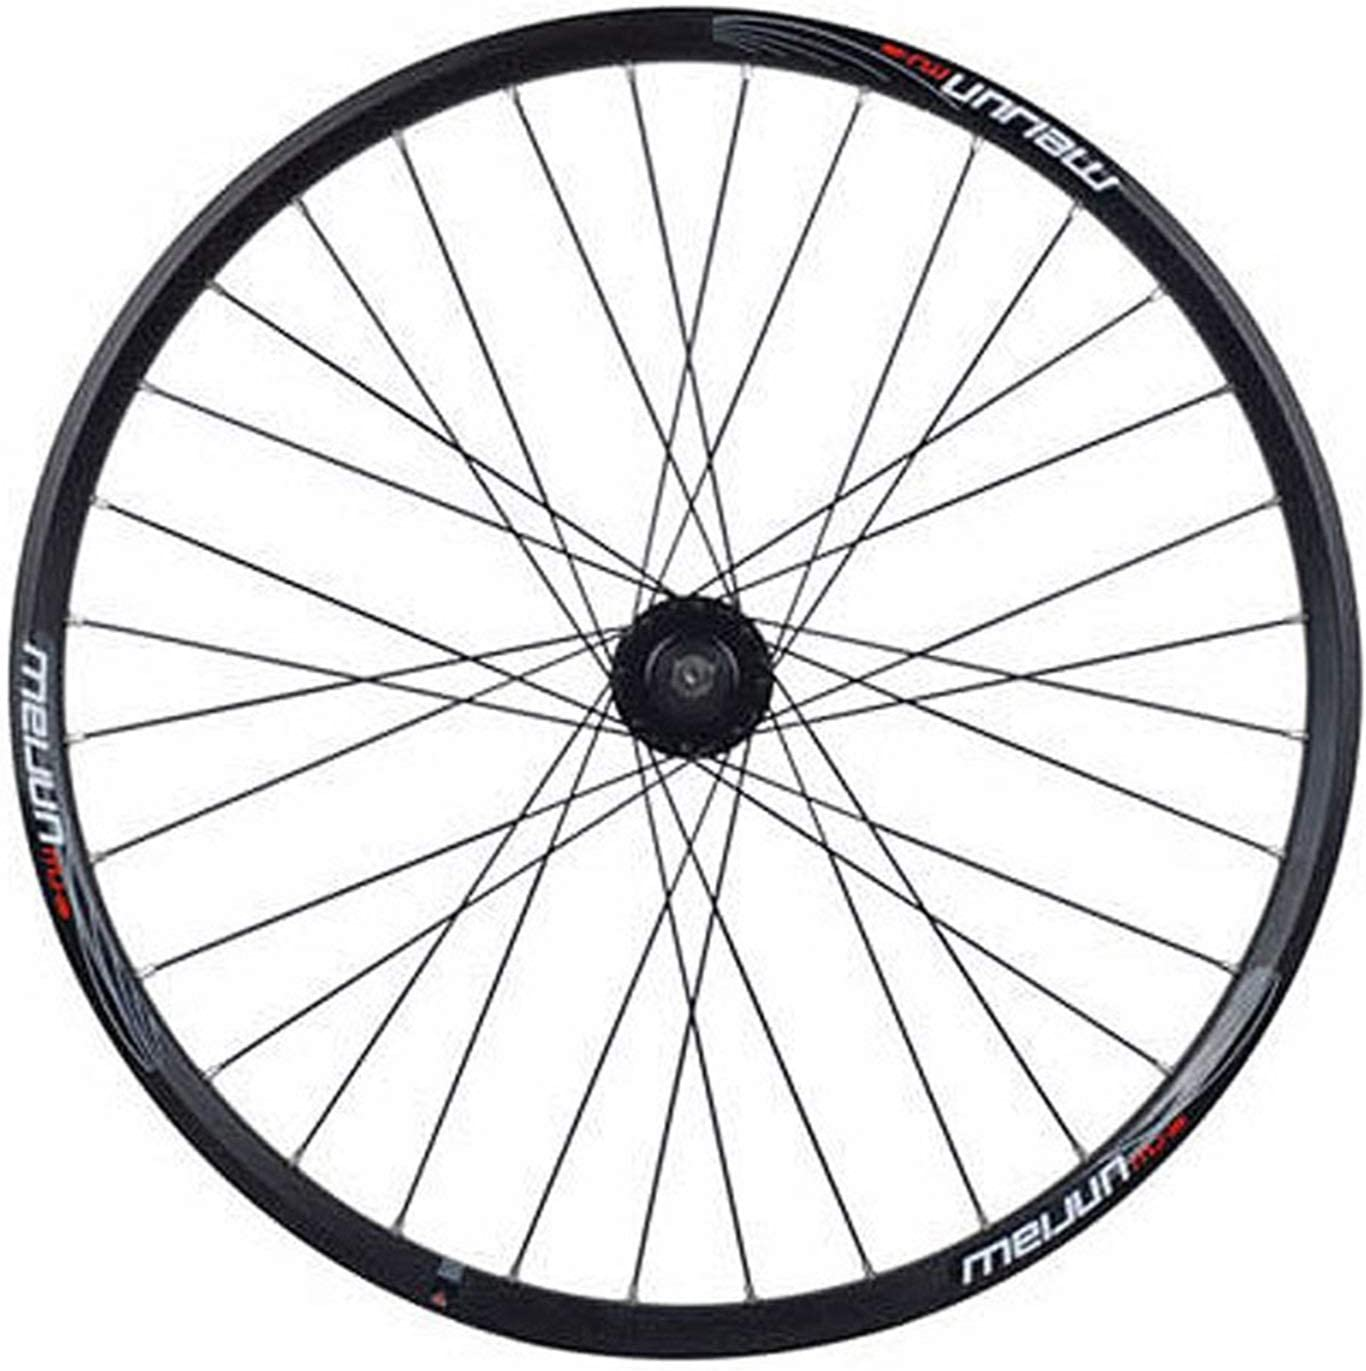 ZCXBHD 26 Max 69% OFF Inch Mountain Bike Rear Wheel disc Release Bra V Quick Ranking integrated 1st place